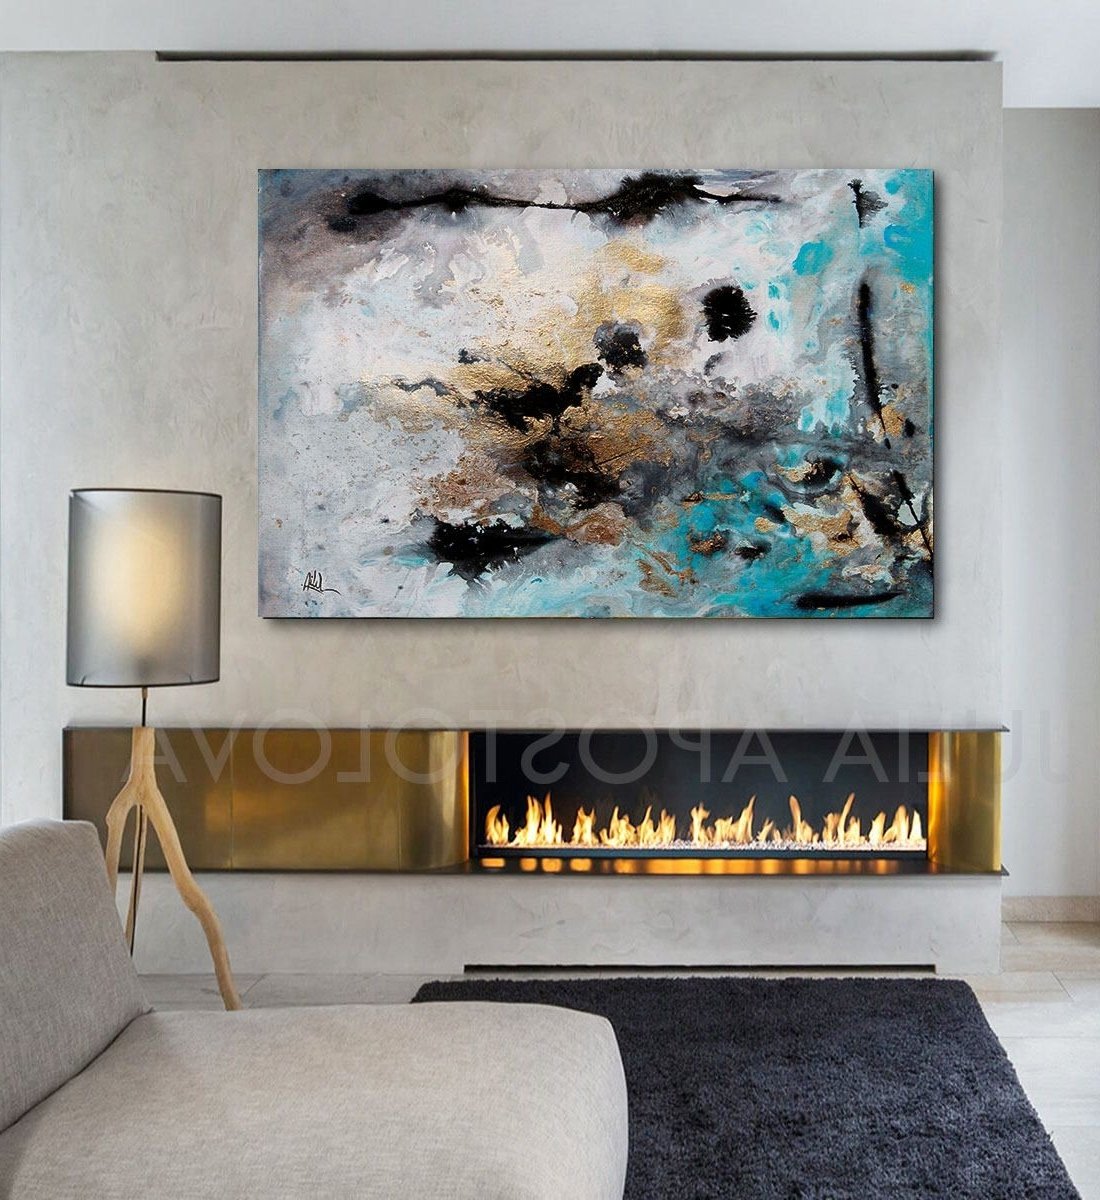 Extra Large Wall Art Pertaining To Favorite 48inch, Turquoise Gold Black, Abstract Print, Large Wall Art (View 2 of 20)